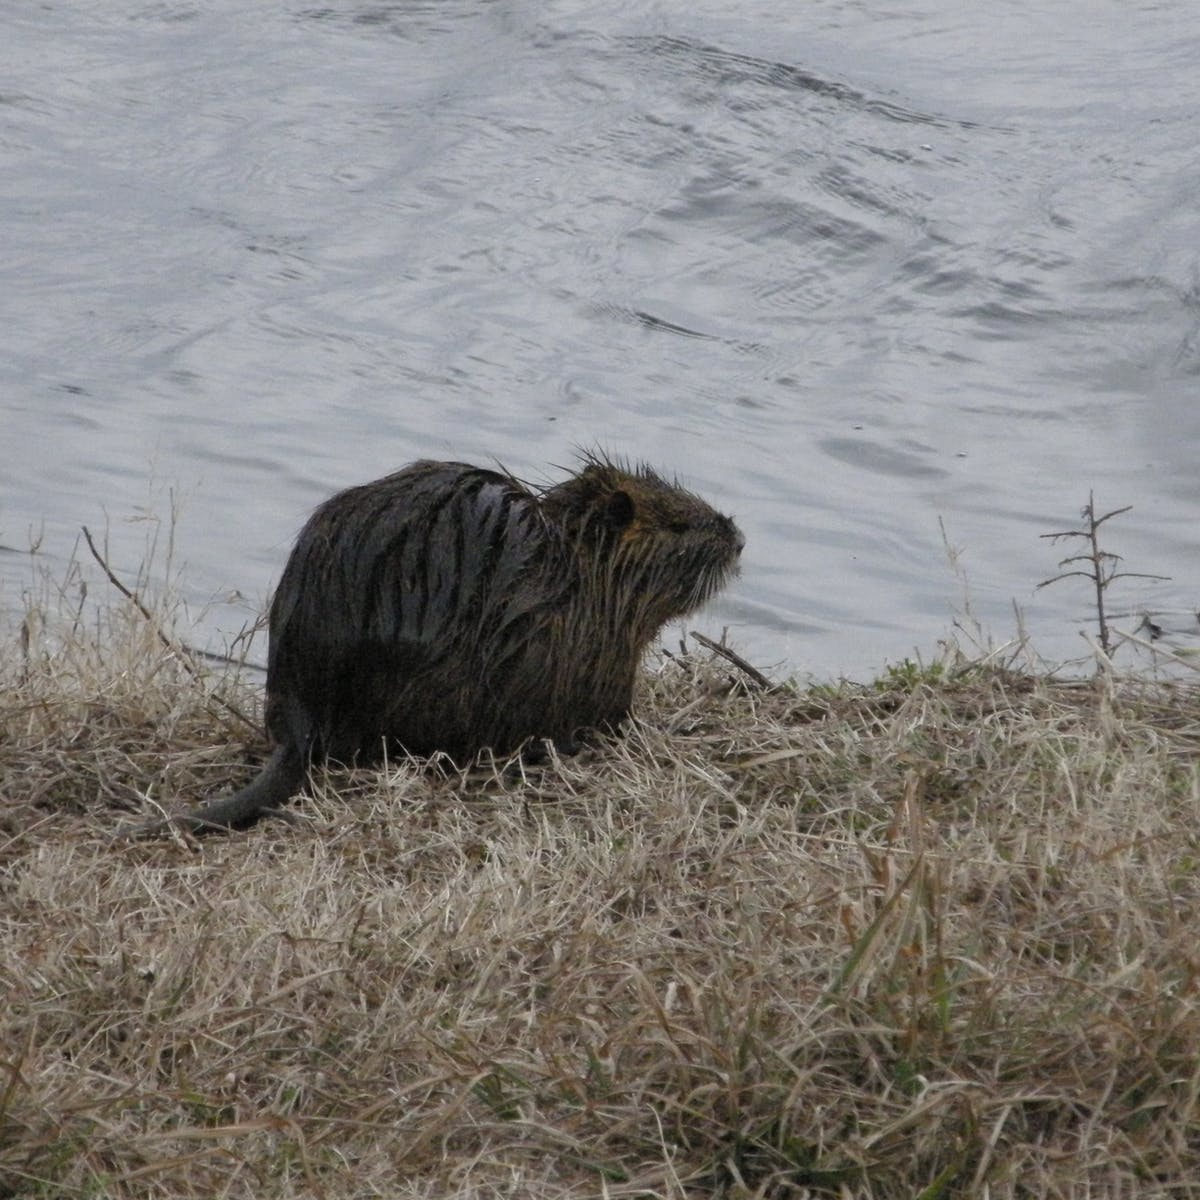 People have bizarre ways of dealing with nutria